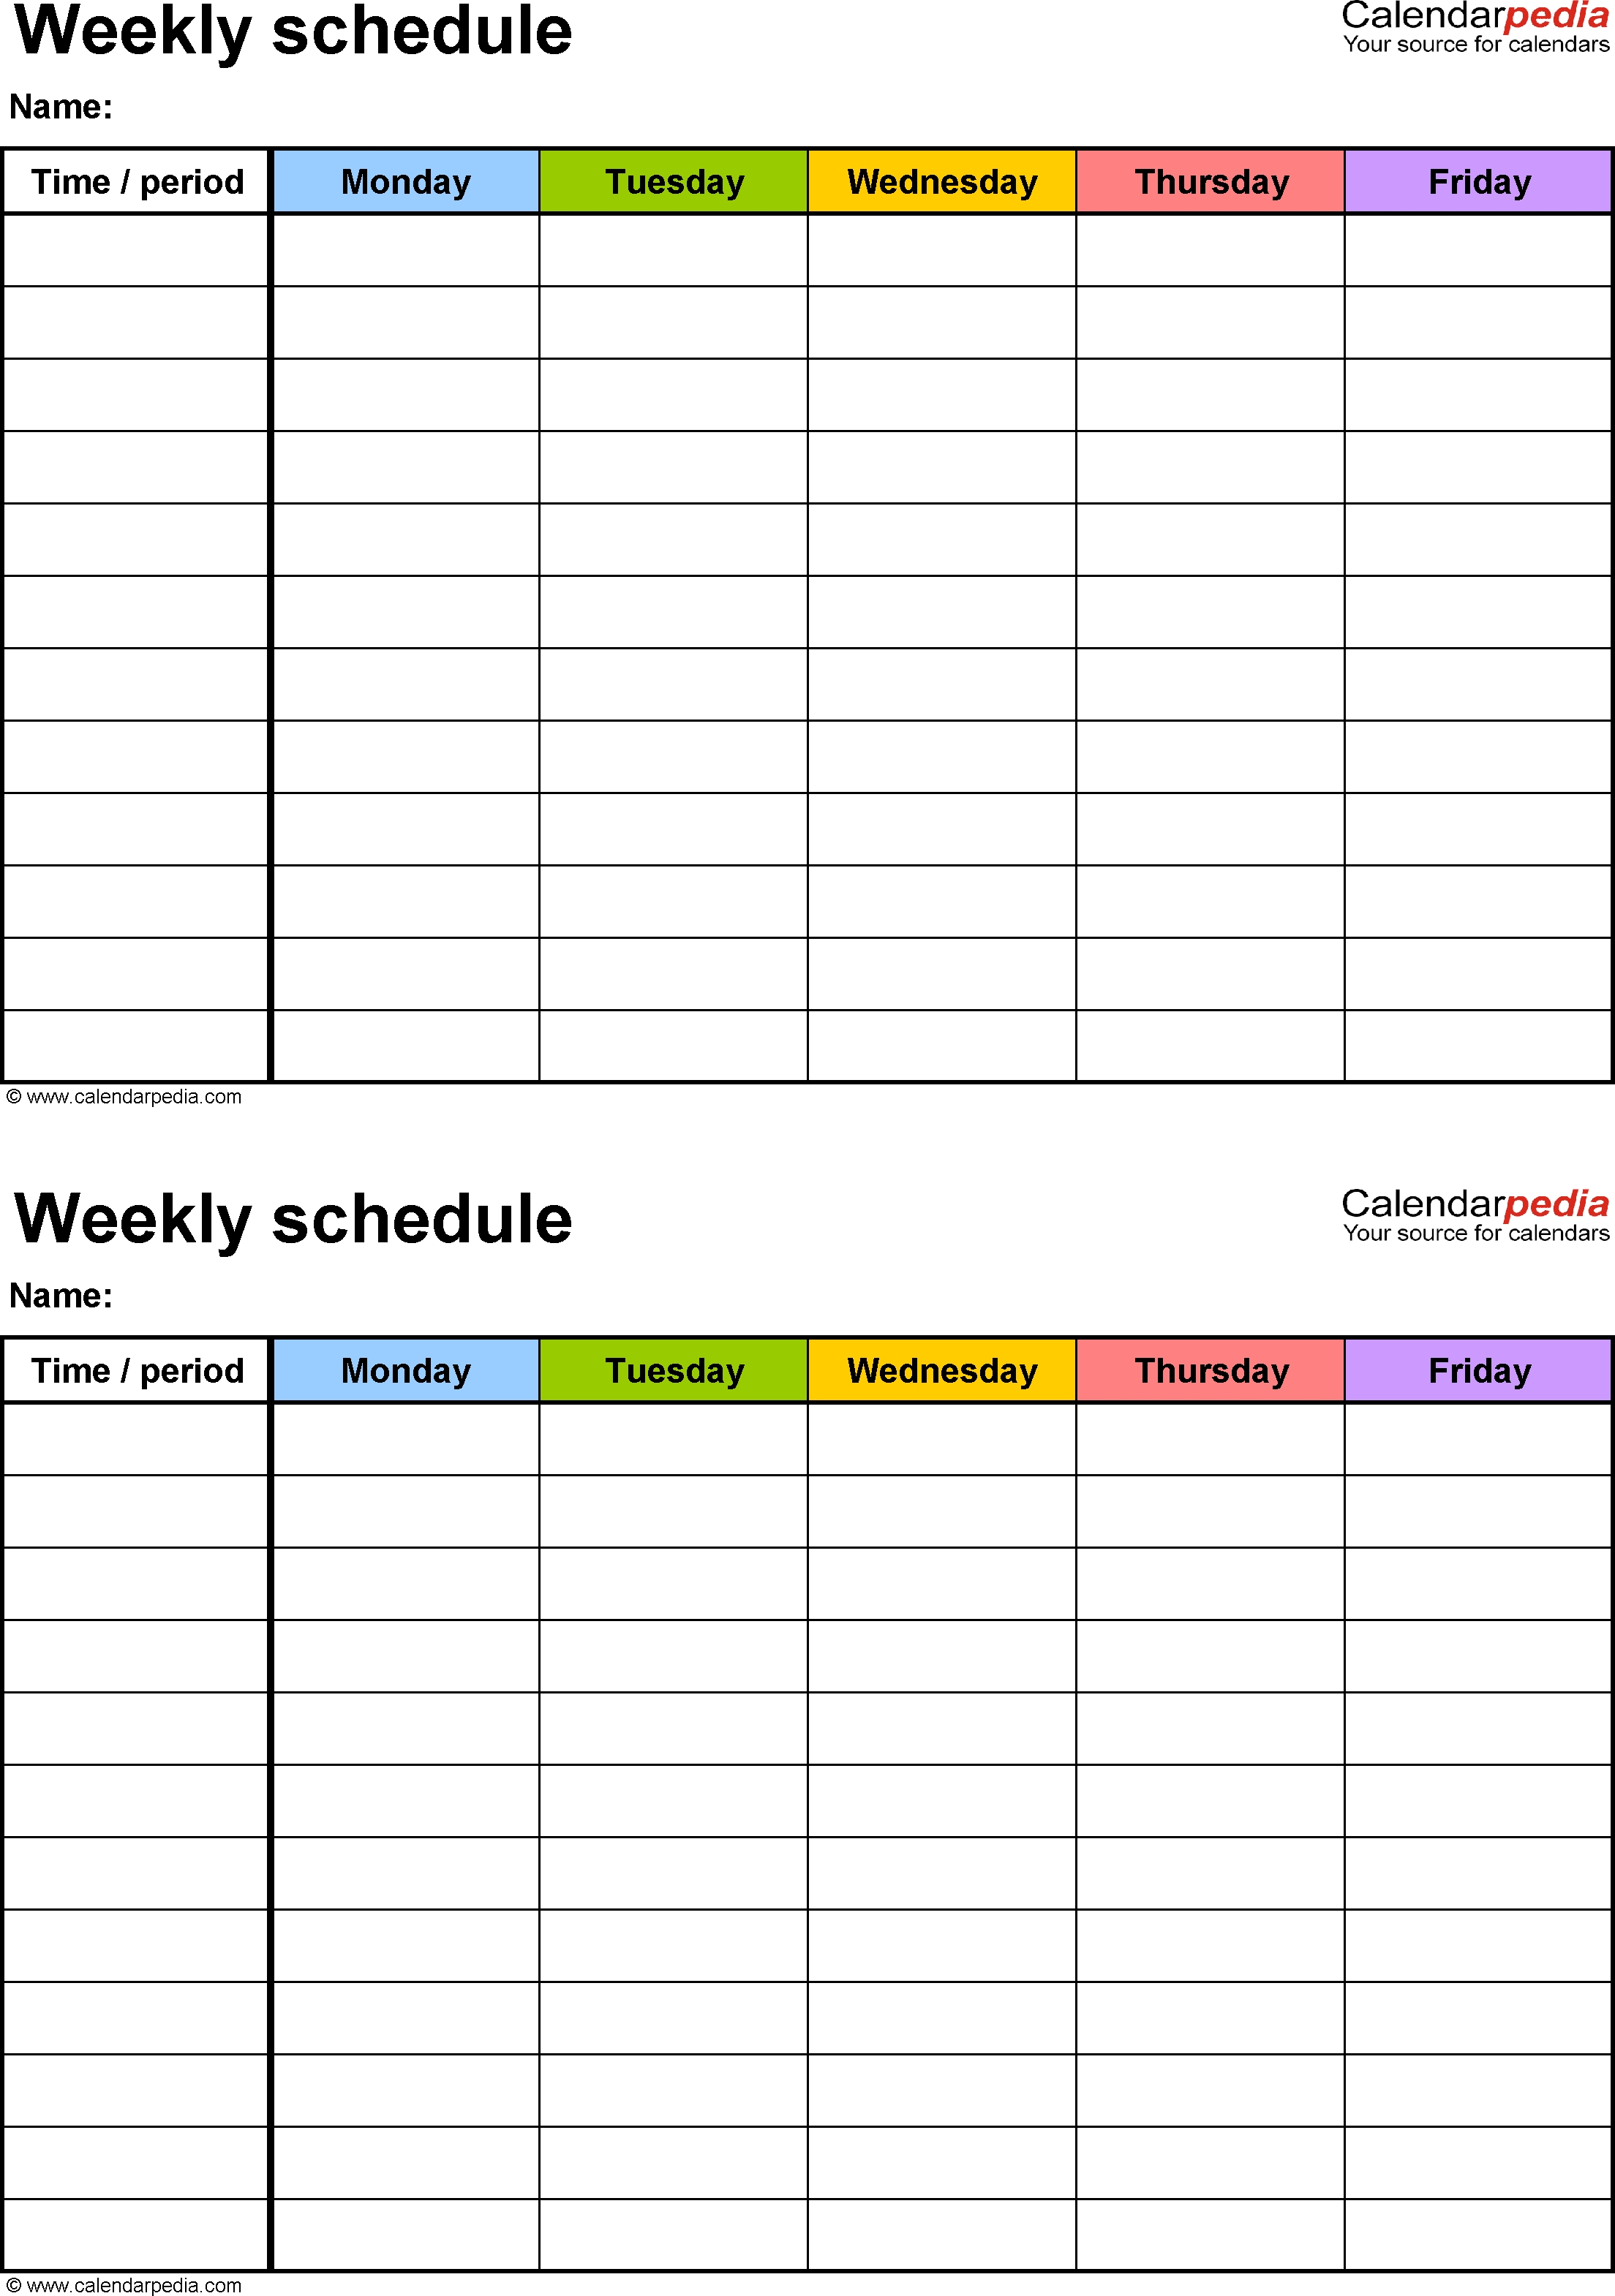 Free Weekly Schedule Templates For Word - 18 Templates pertaining to Print A Two Week Calendar